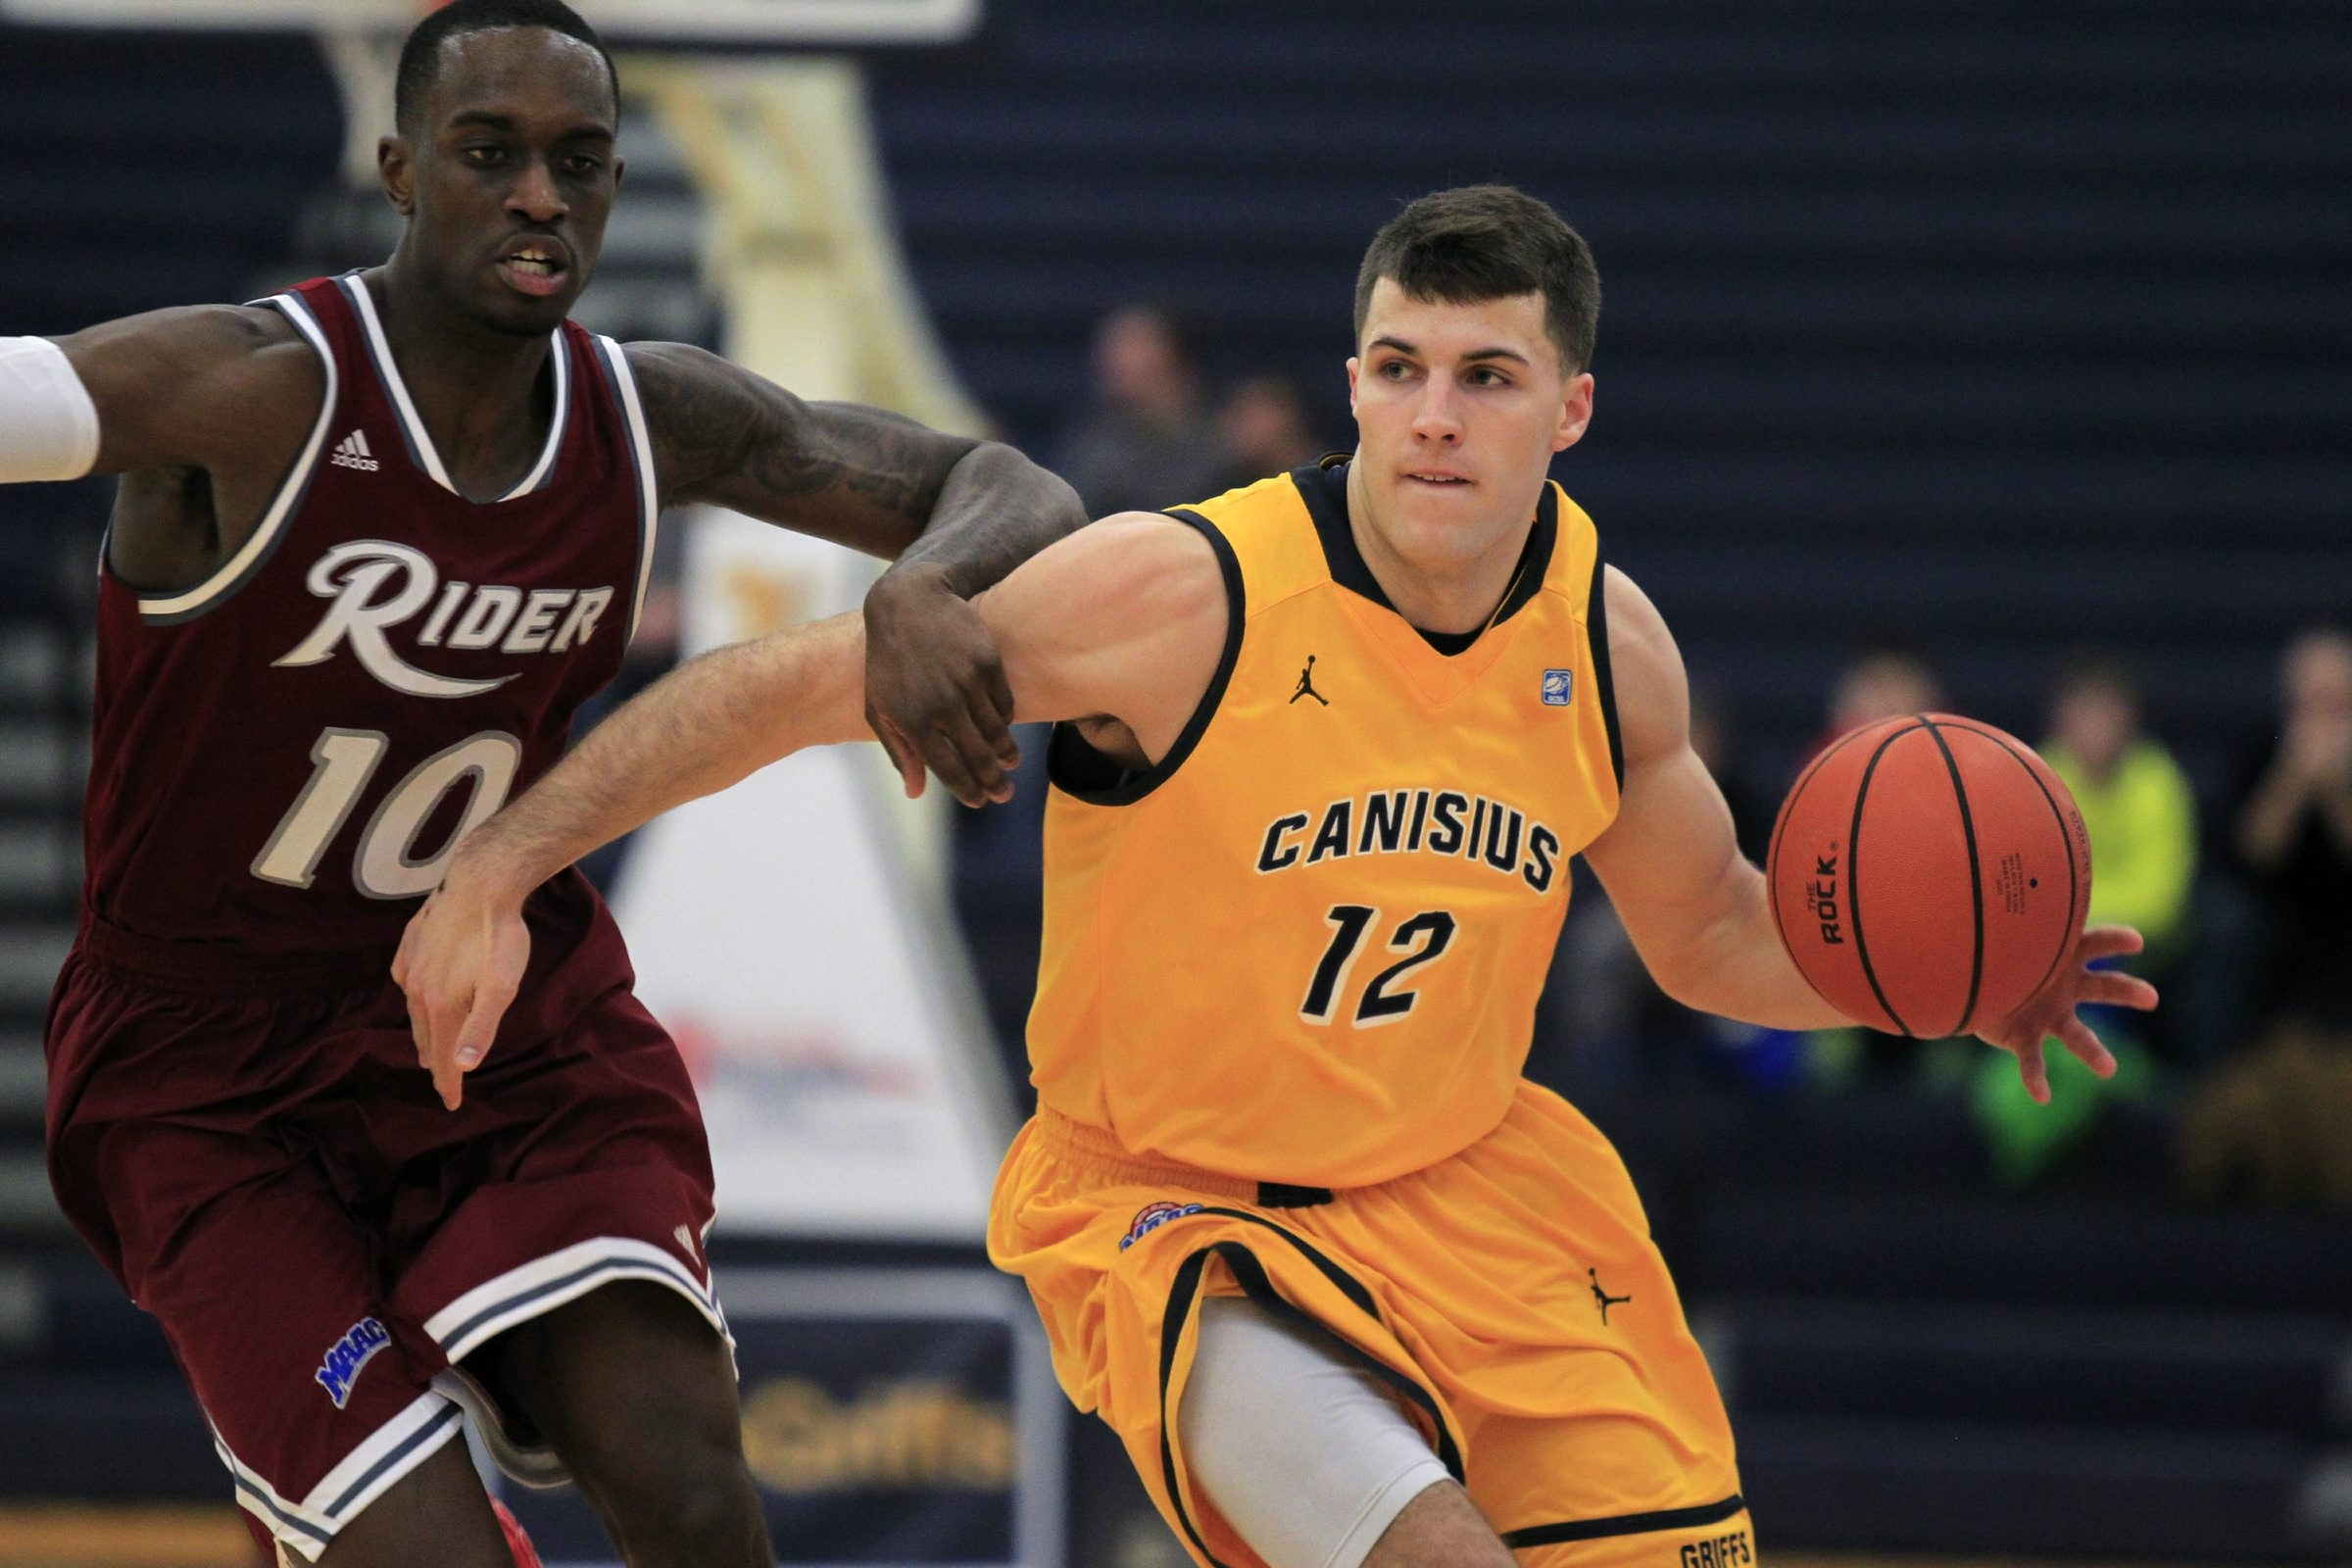 Billy Baron of Canisius dribbles past Rider's Anthony Myles Friday. For a photo gallery from the game, go to BuffaloNews.com.